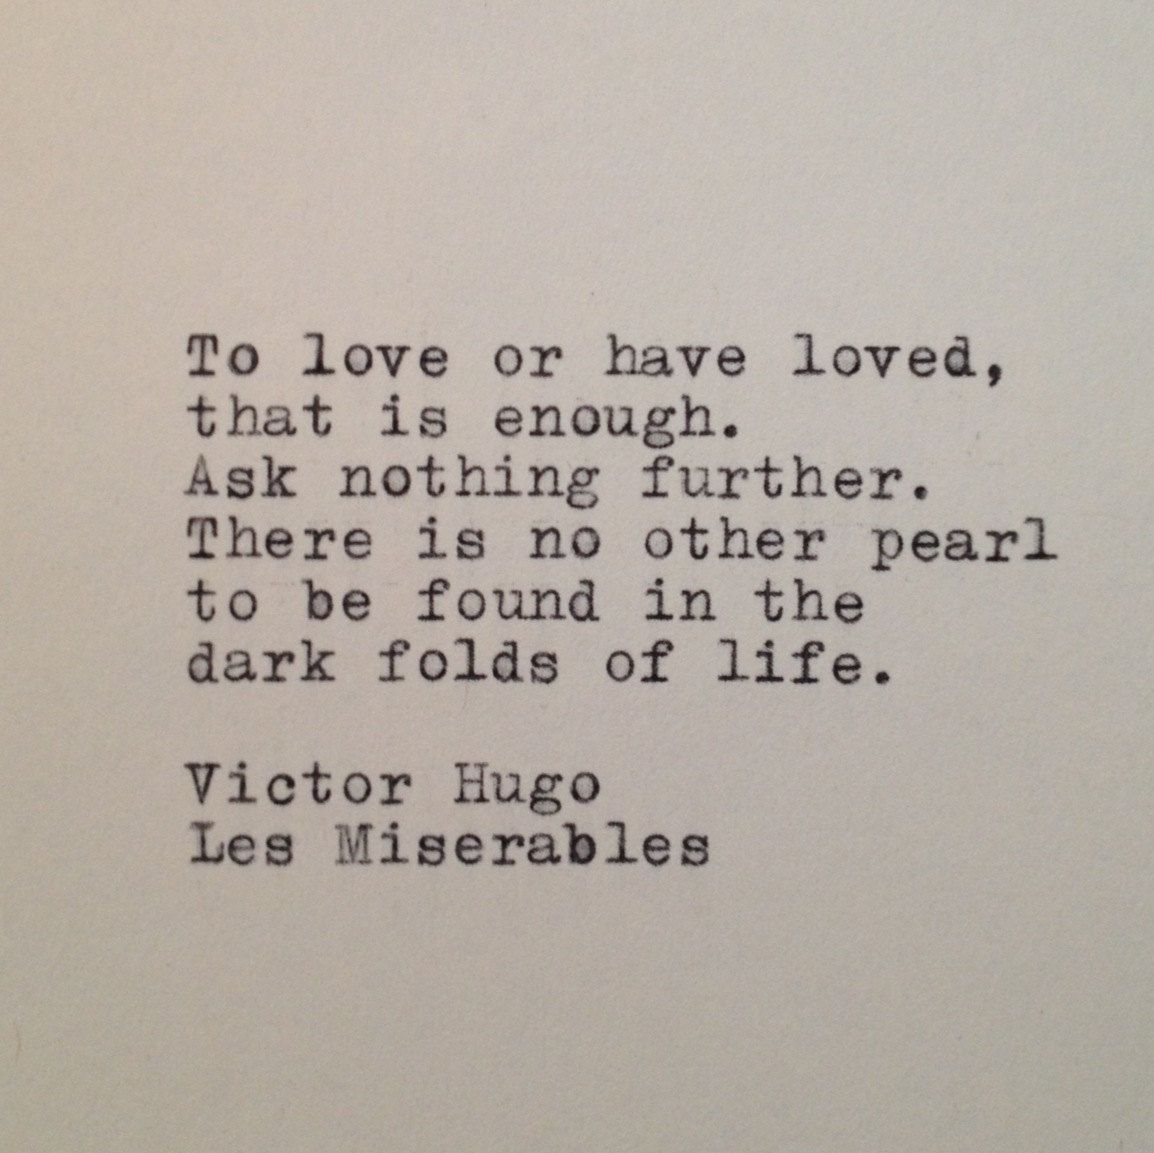 Books With Quotes About Life Lesmiserablesnovelquotes  Like This Item  Books  Pinterest